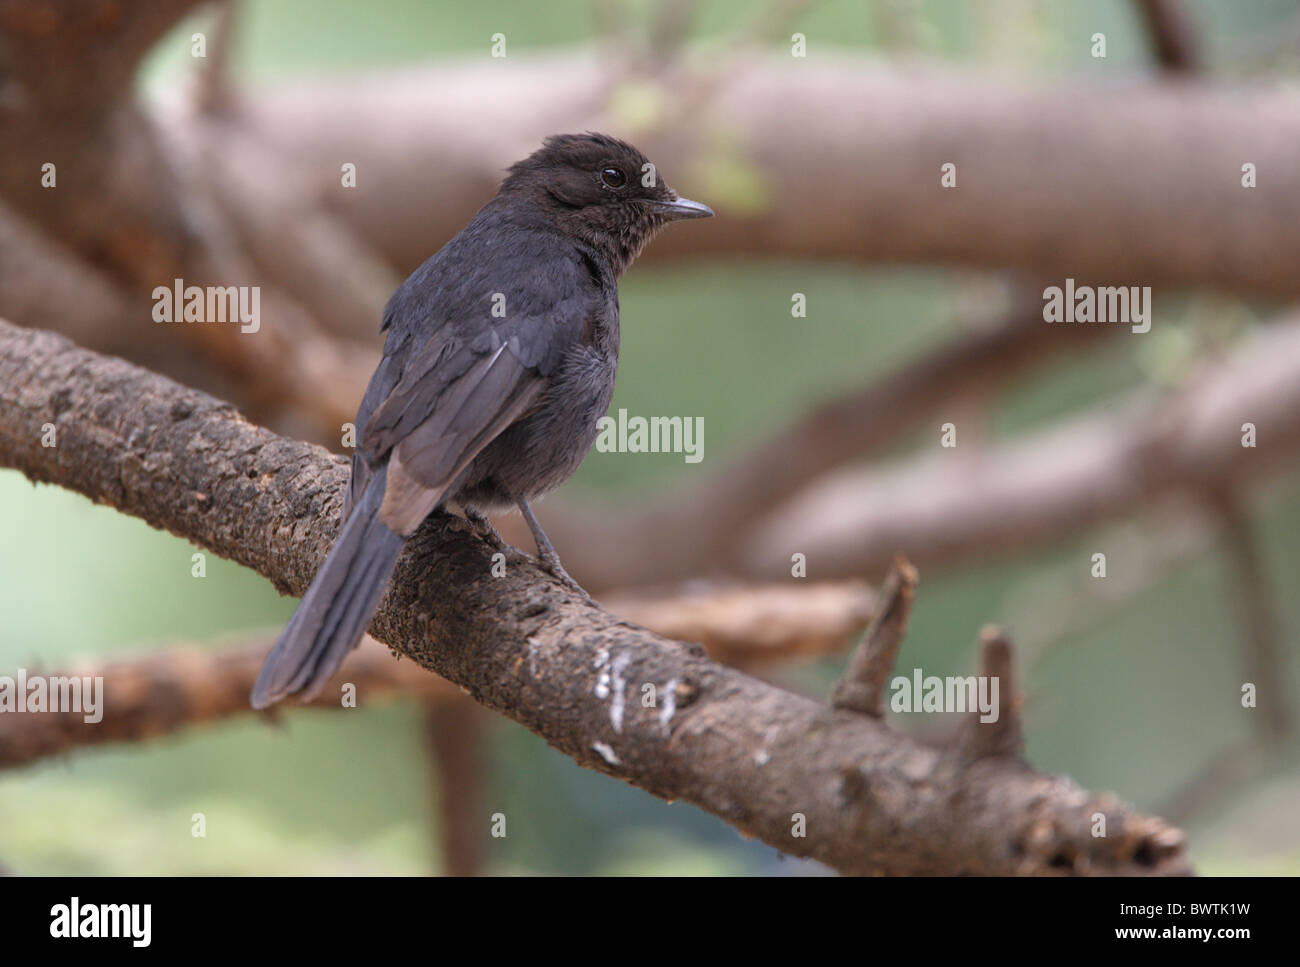 Northern Black-flycatcher (Melaenornis edolioides) adult, perched on branch, Ethiopia, april - Stock Image